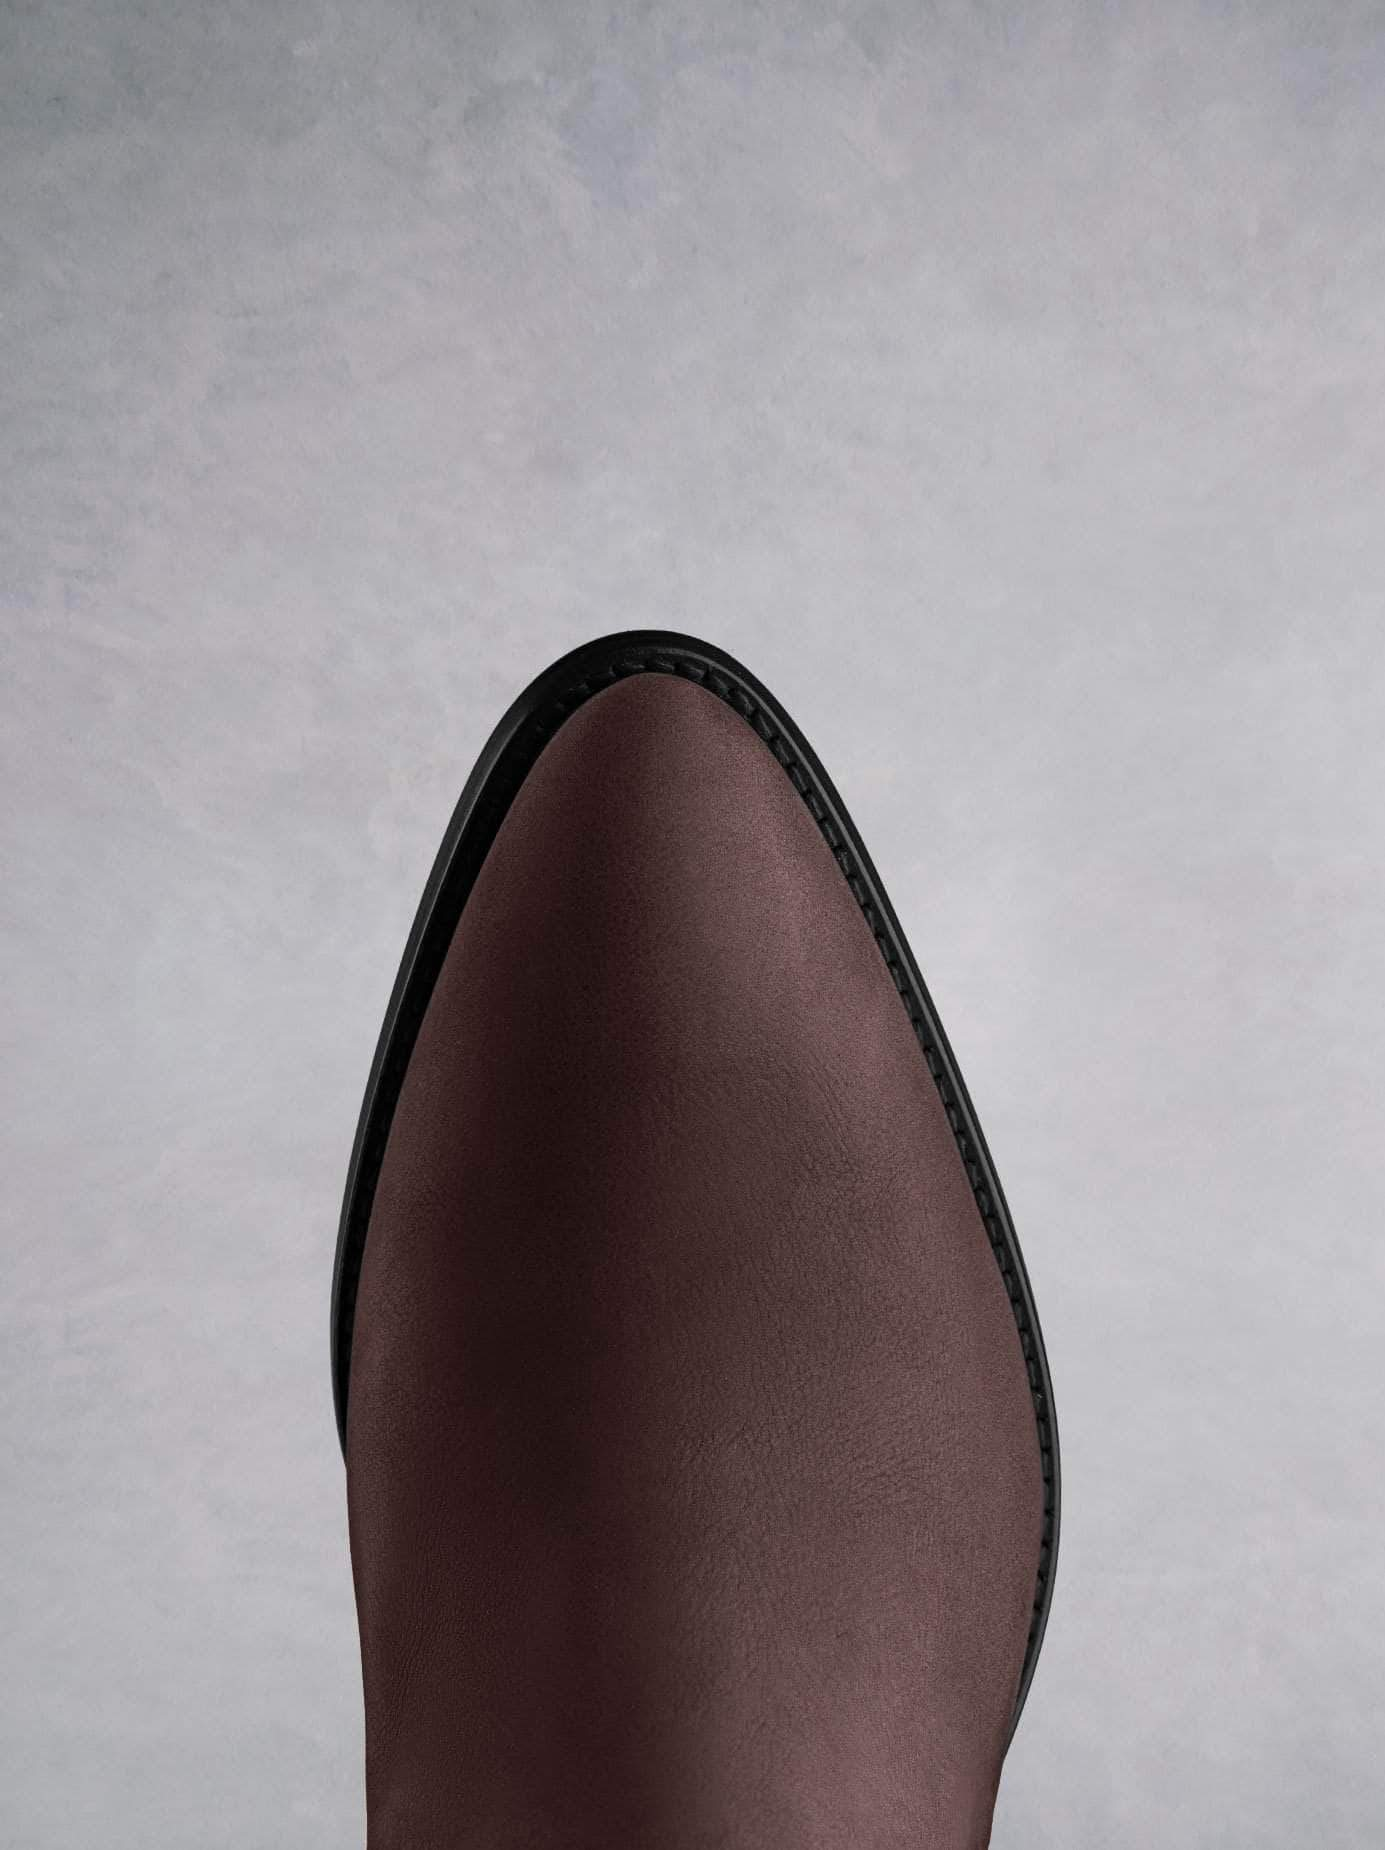 This burgundy ankle boot features a western style pointed toe shape.